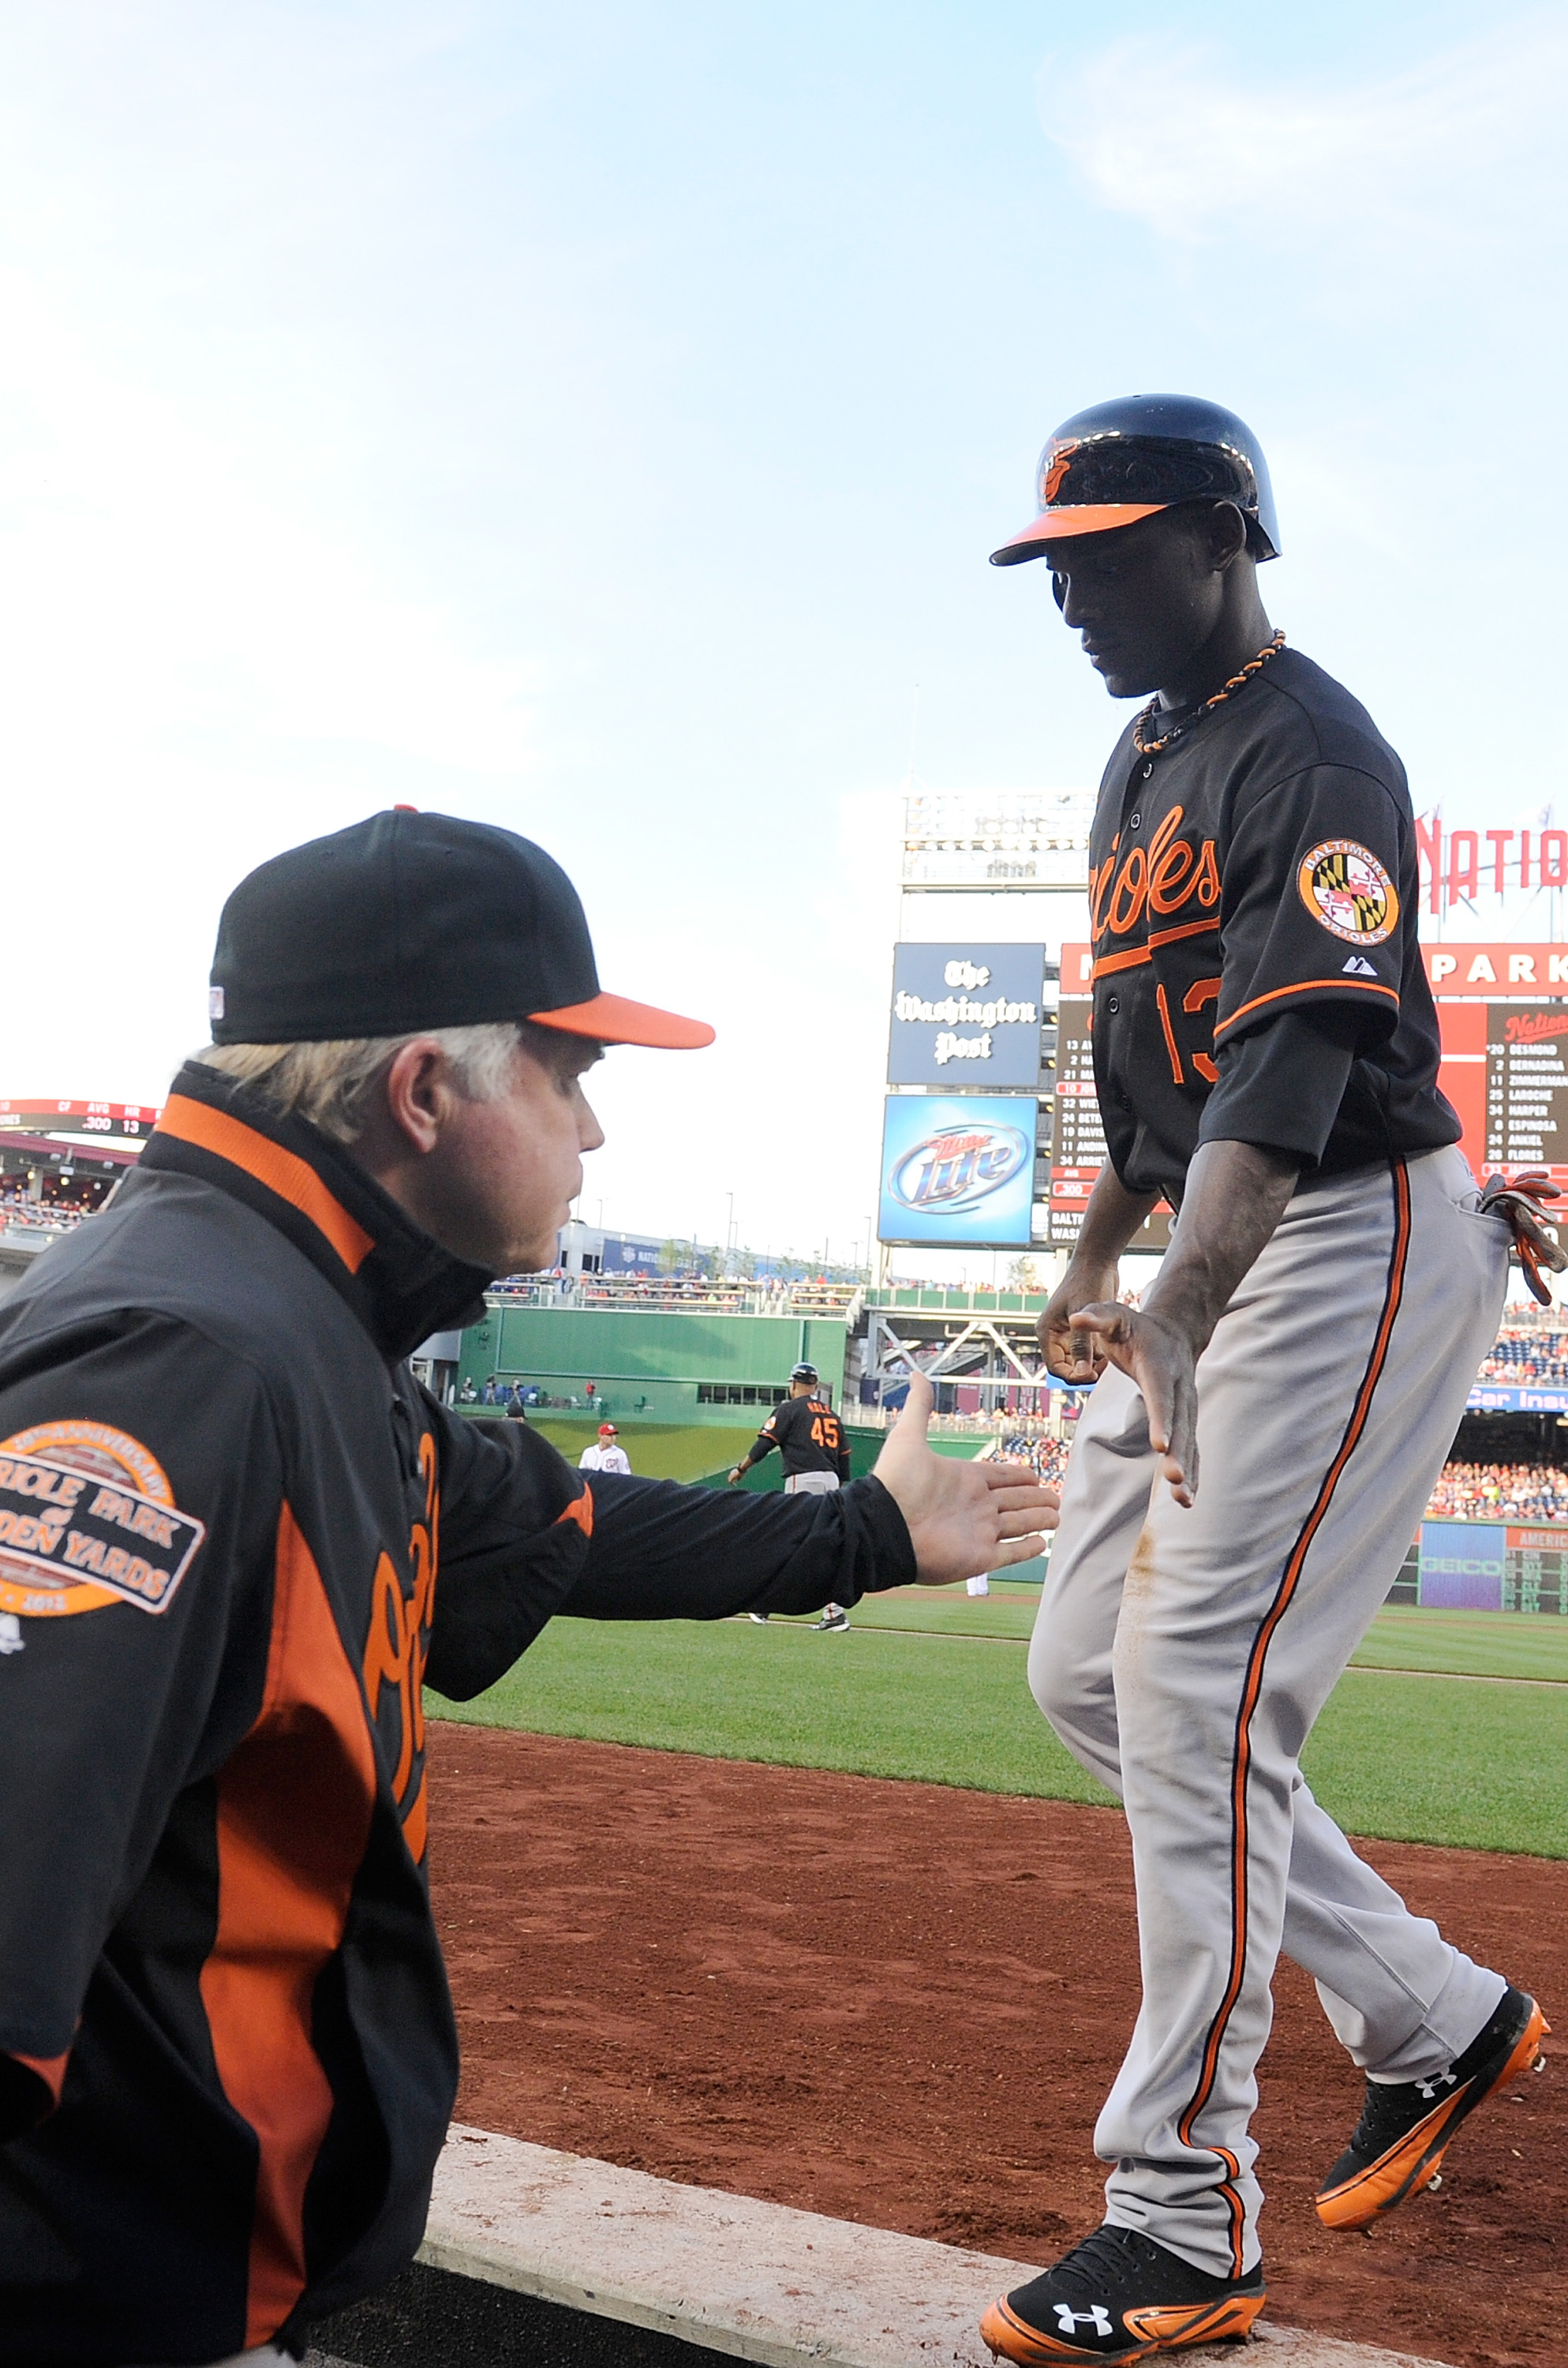 Buck Showalter, the player's manager, likes to pick the brains of his young Orioles on strategies. (Getty)